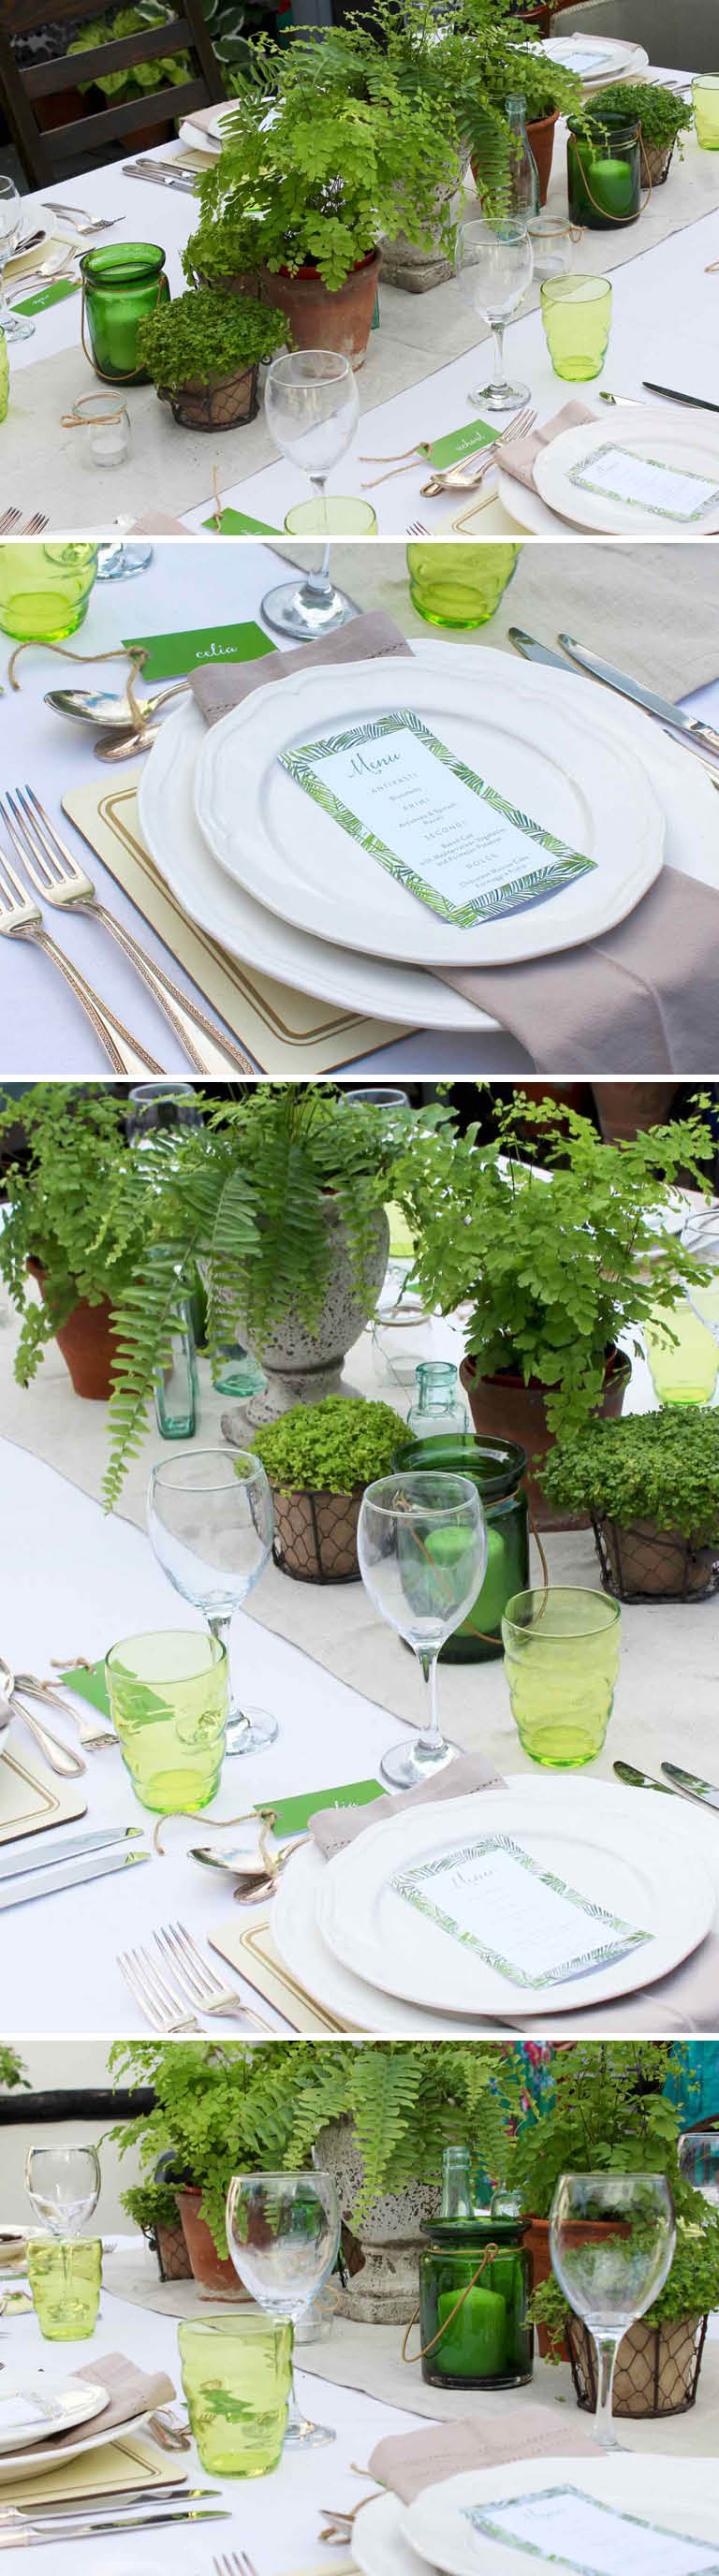 Botanical table theme with ferns